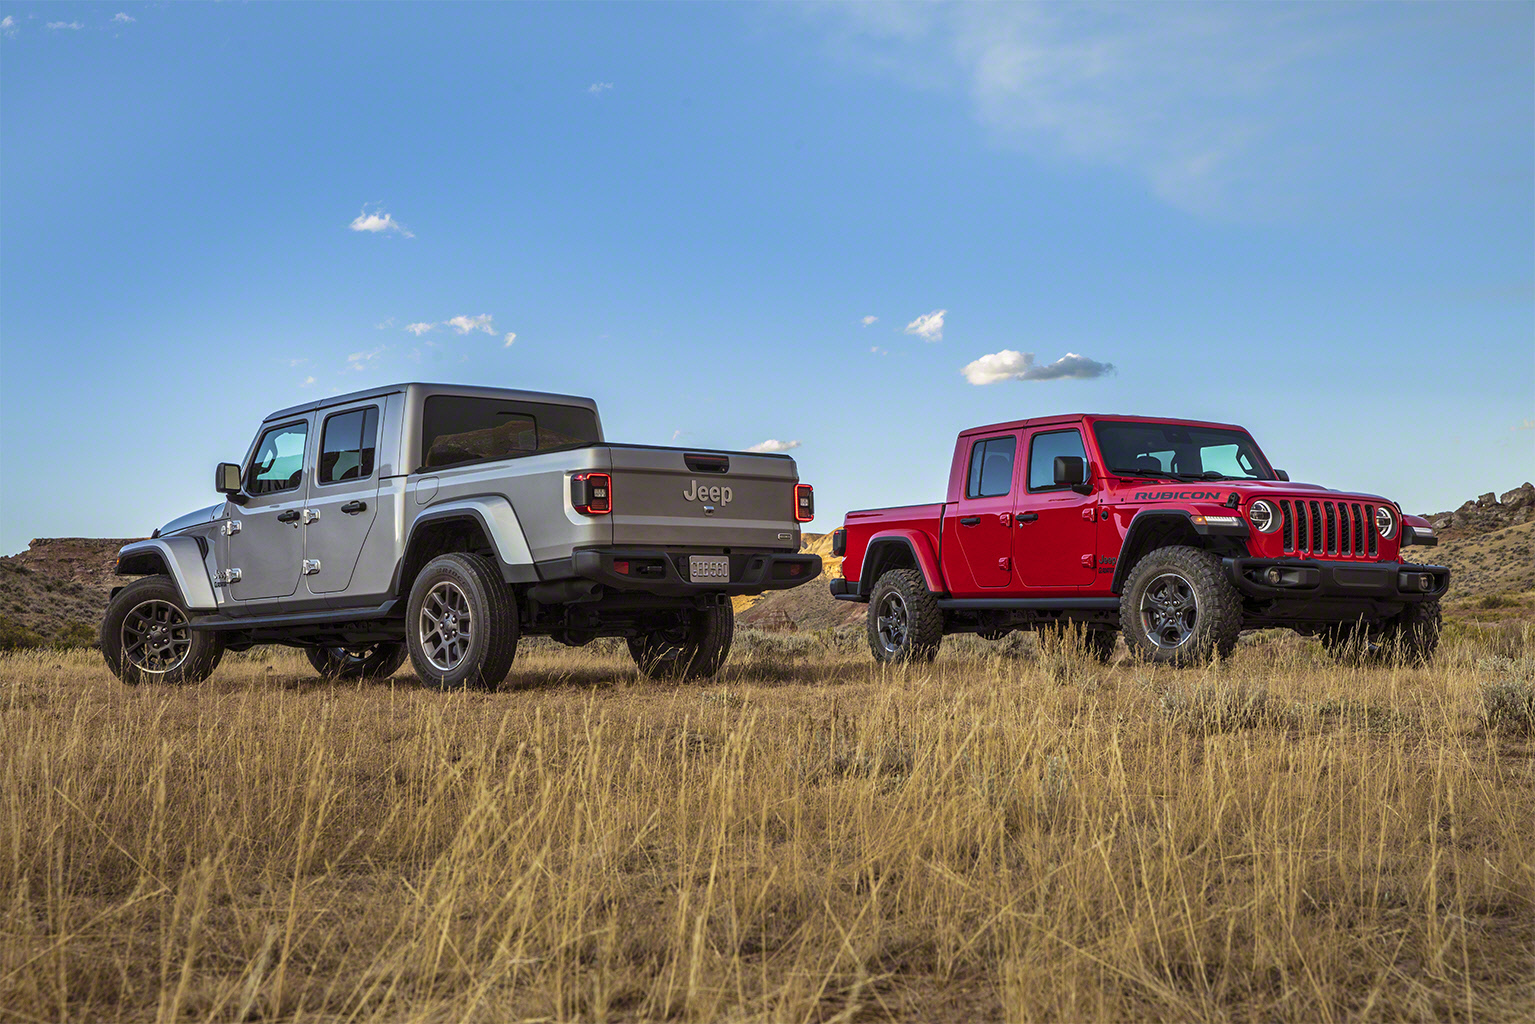 2020 Jeep Gladiator side by side